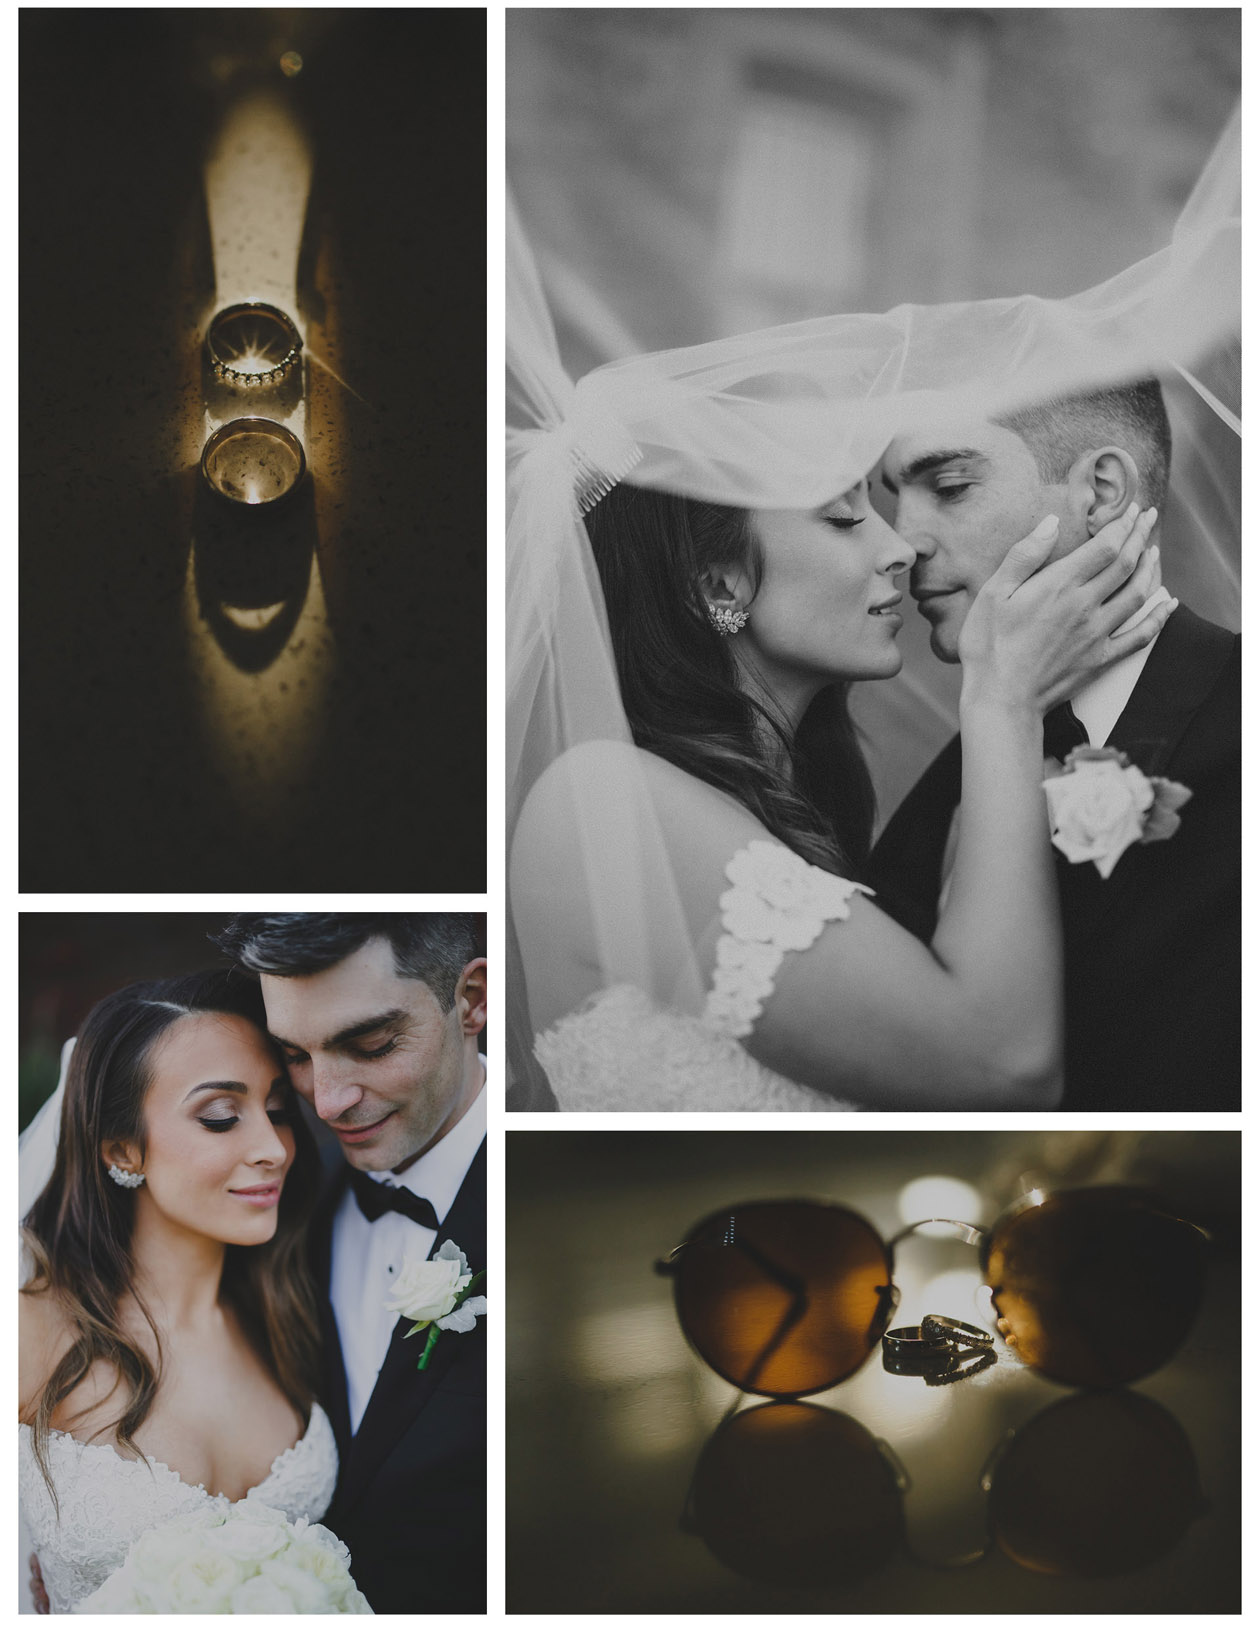 Bride and Groom kiss under the veil with beautiful rings